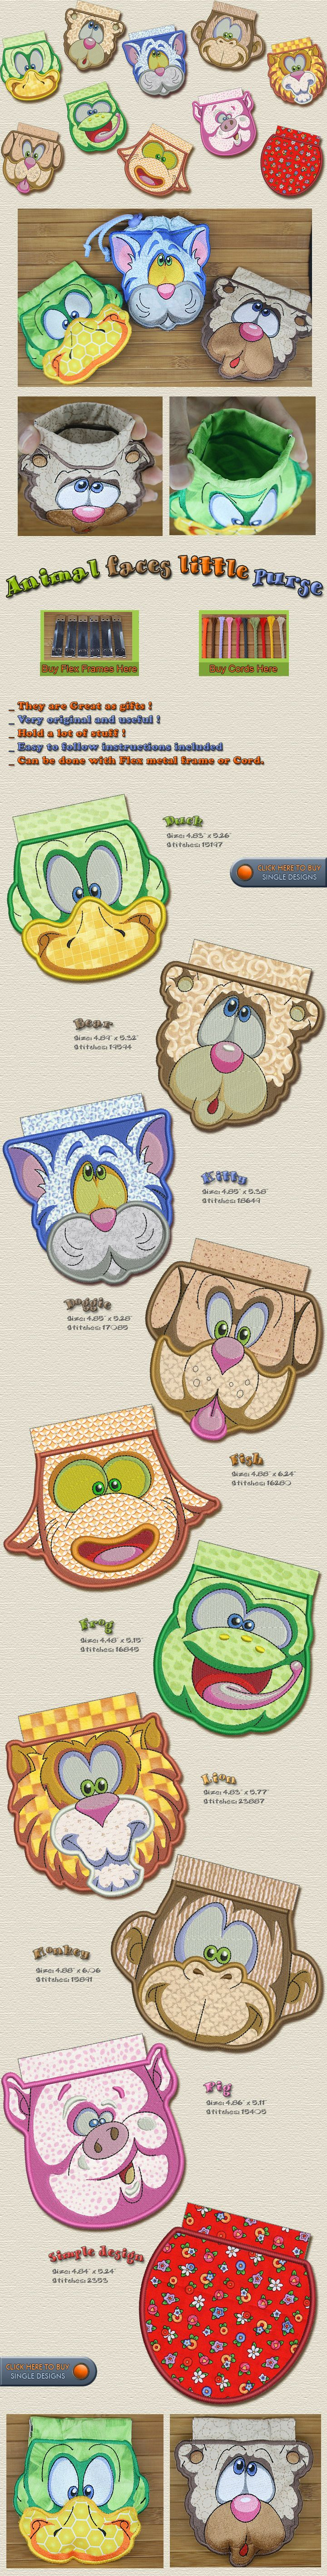 ANIMAL FACES LITTLE PURSES Embroidery Designs Free Embroidery Design Patterns Applique